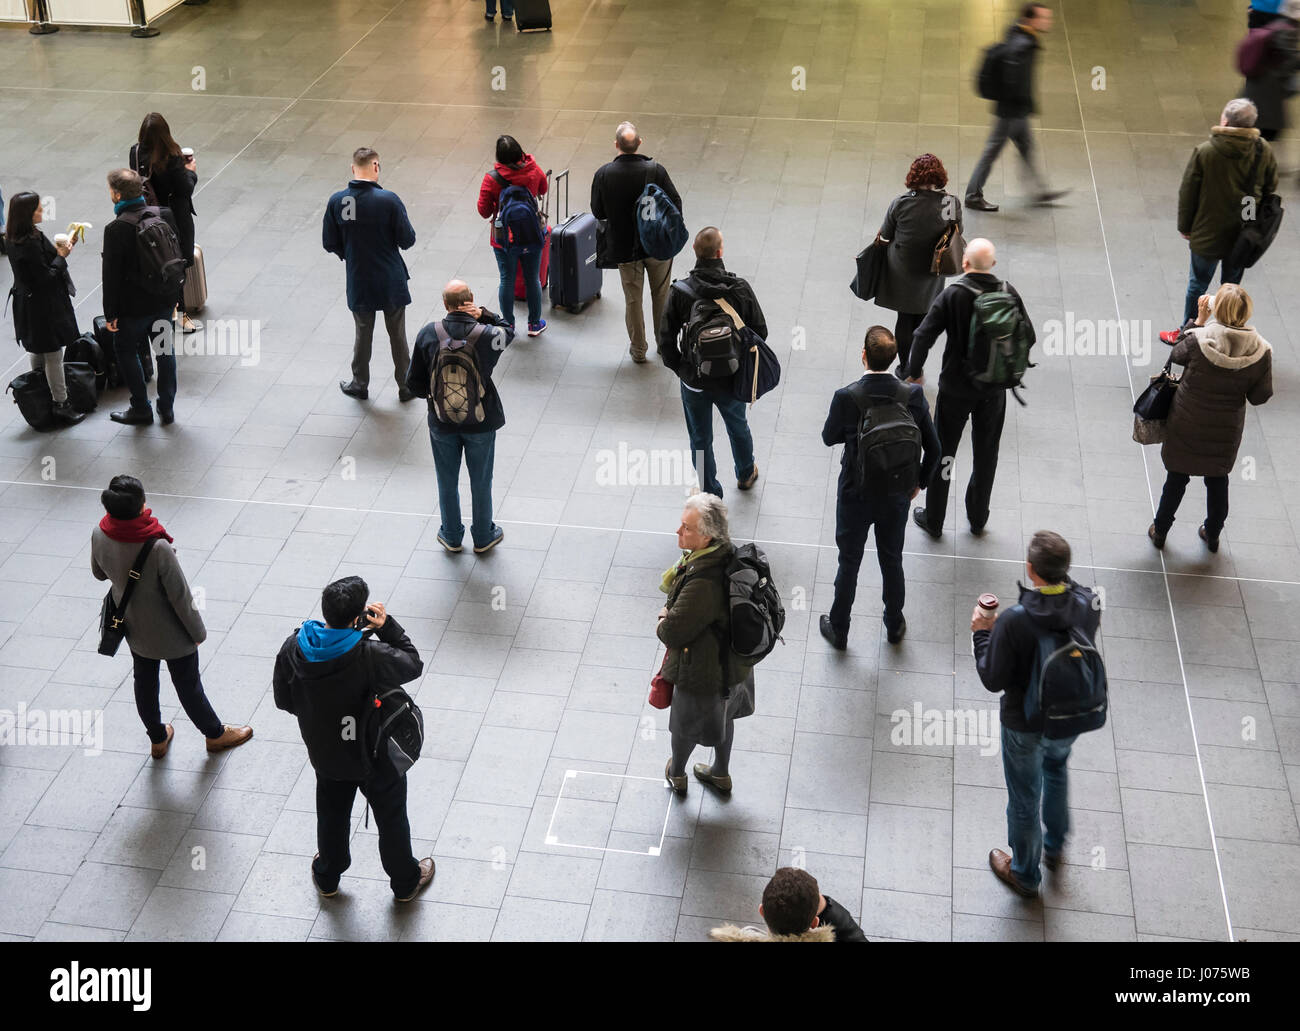 Rail Travellers Waiting for Trains at a Station in the UK - Stock Image